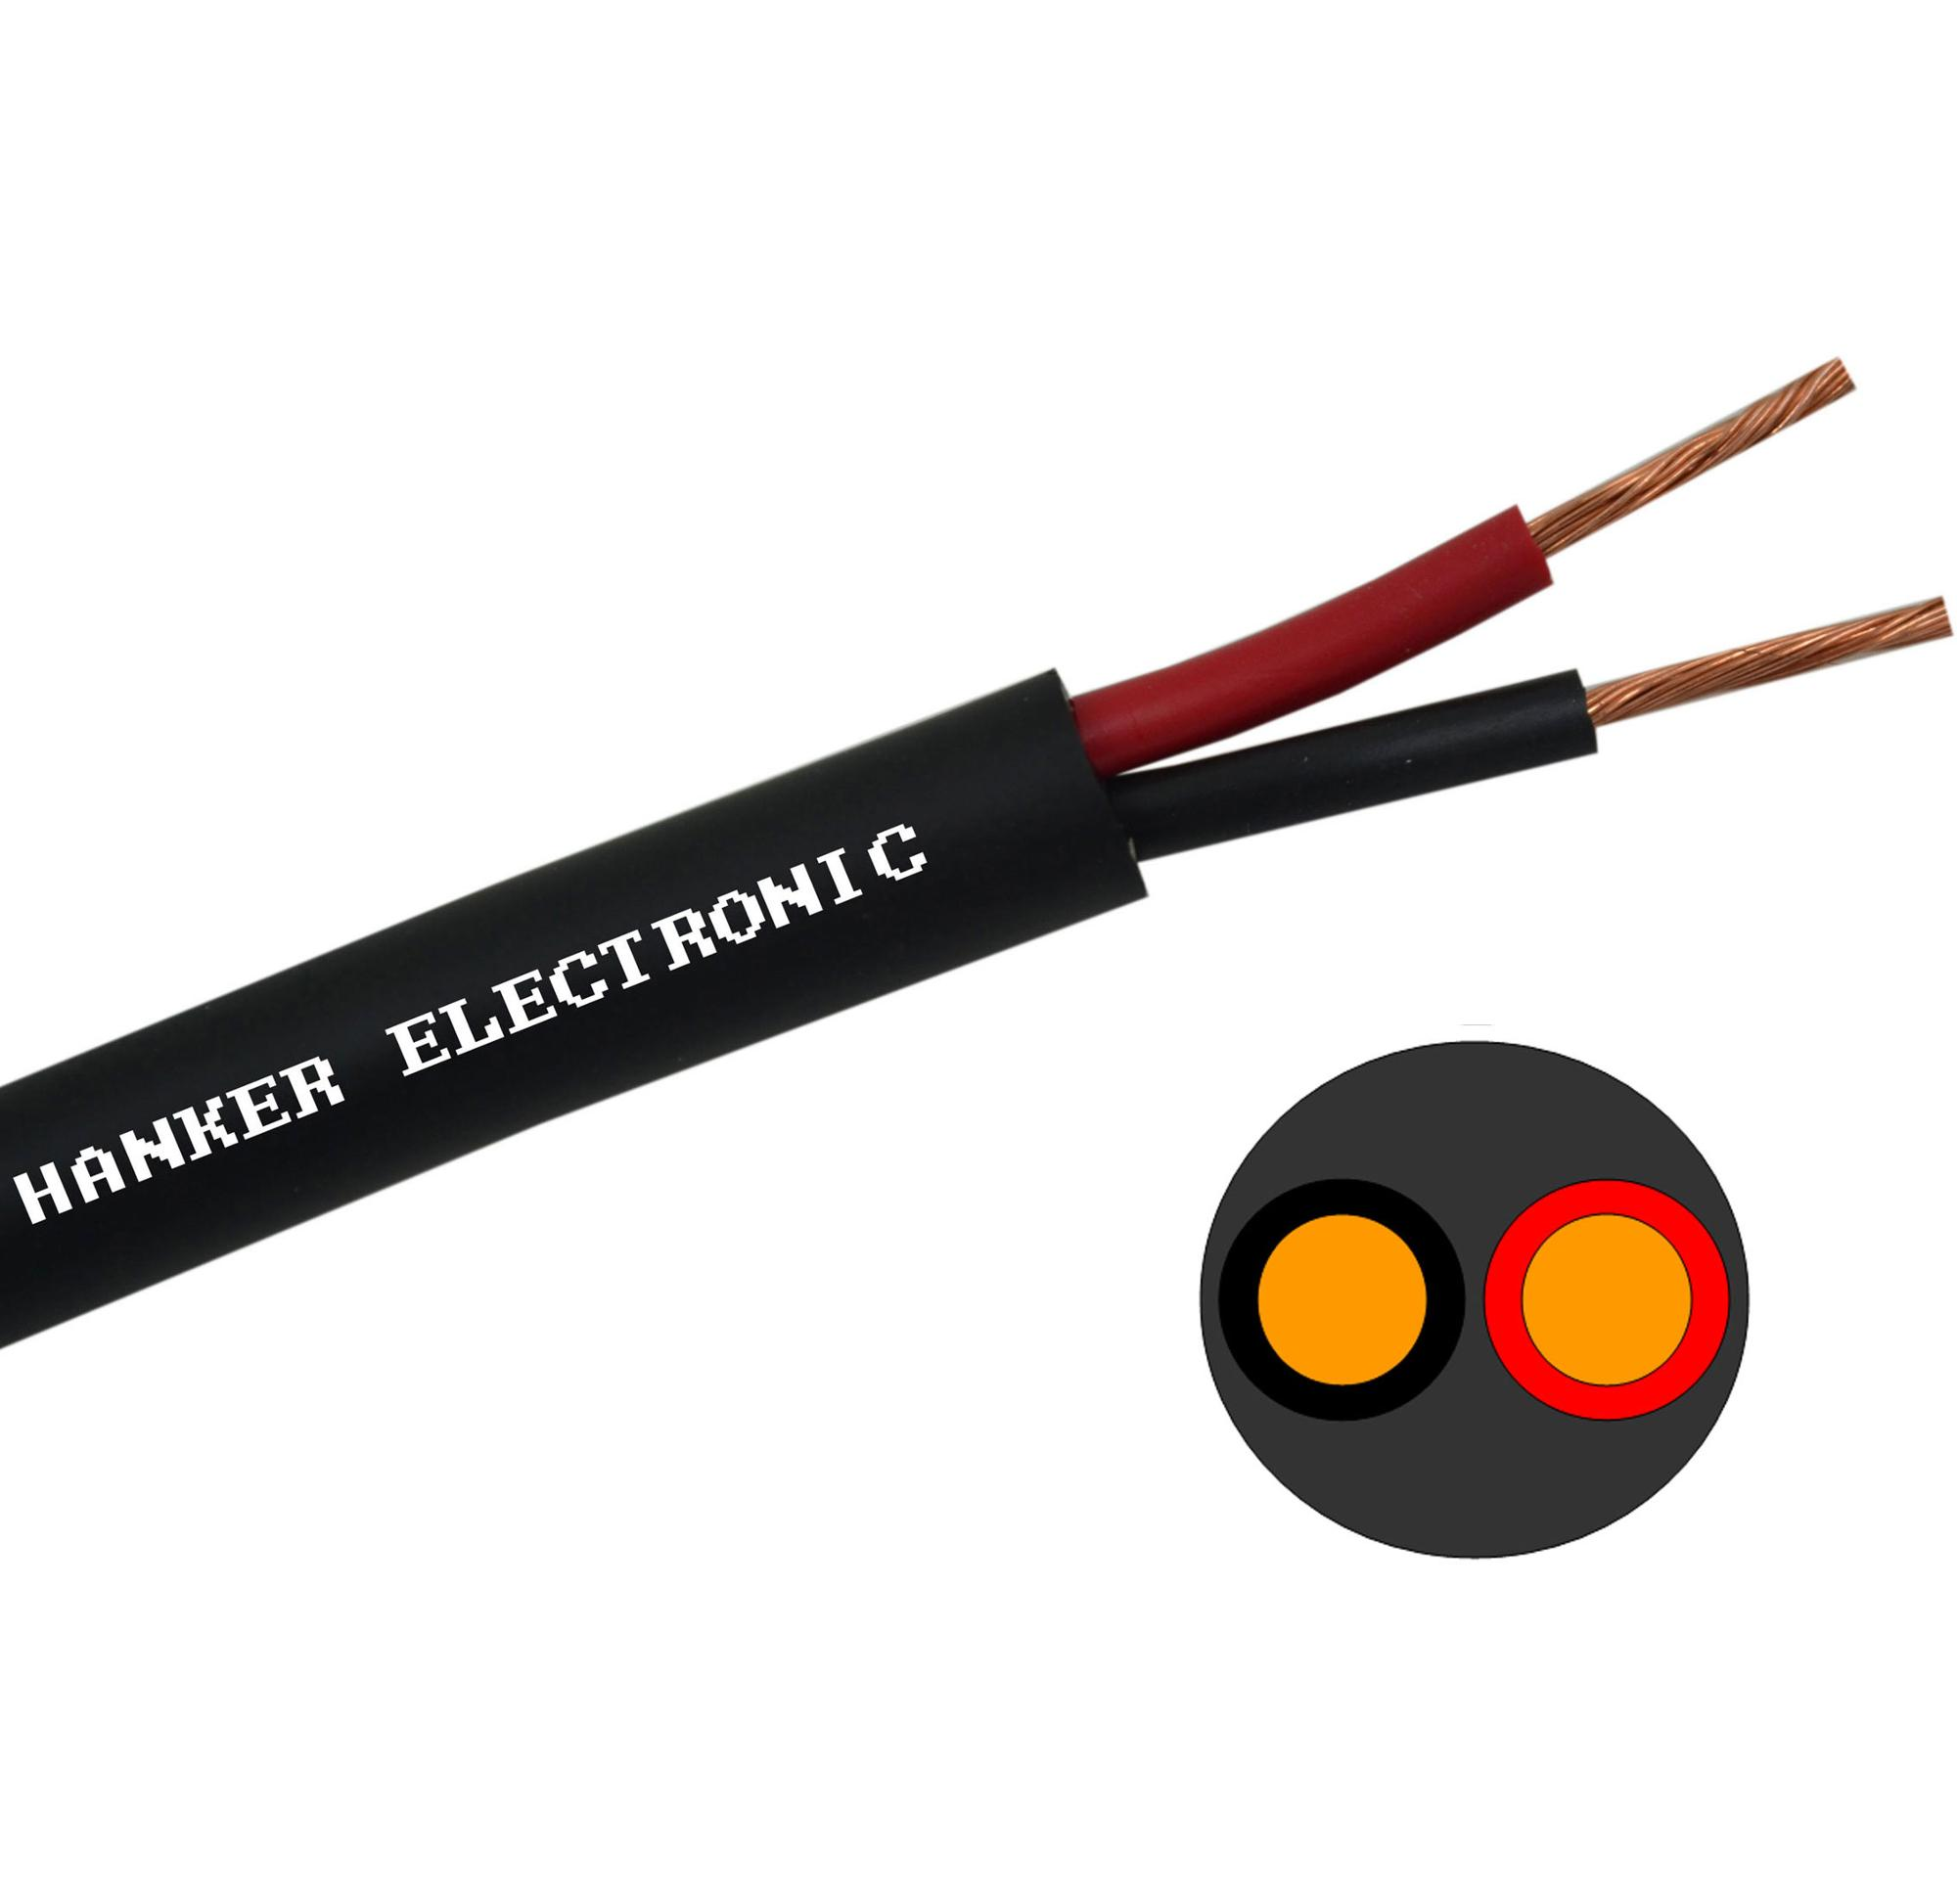 Audio Speaker Cable Twin Earth Pvc Insulated Flat Twinearth And 3 Coreearth We Must Wire Up The Circuit Insulation Cables Suppliers Manufacturers At Alibabacom